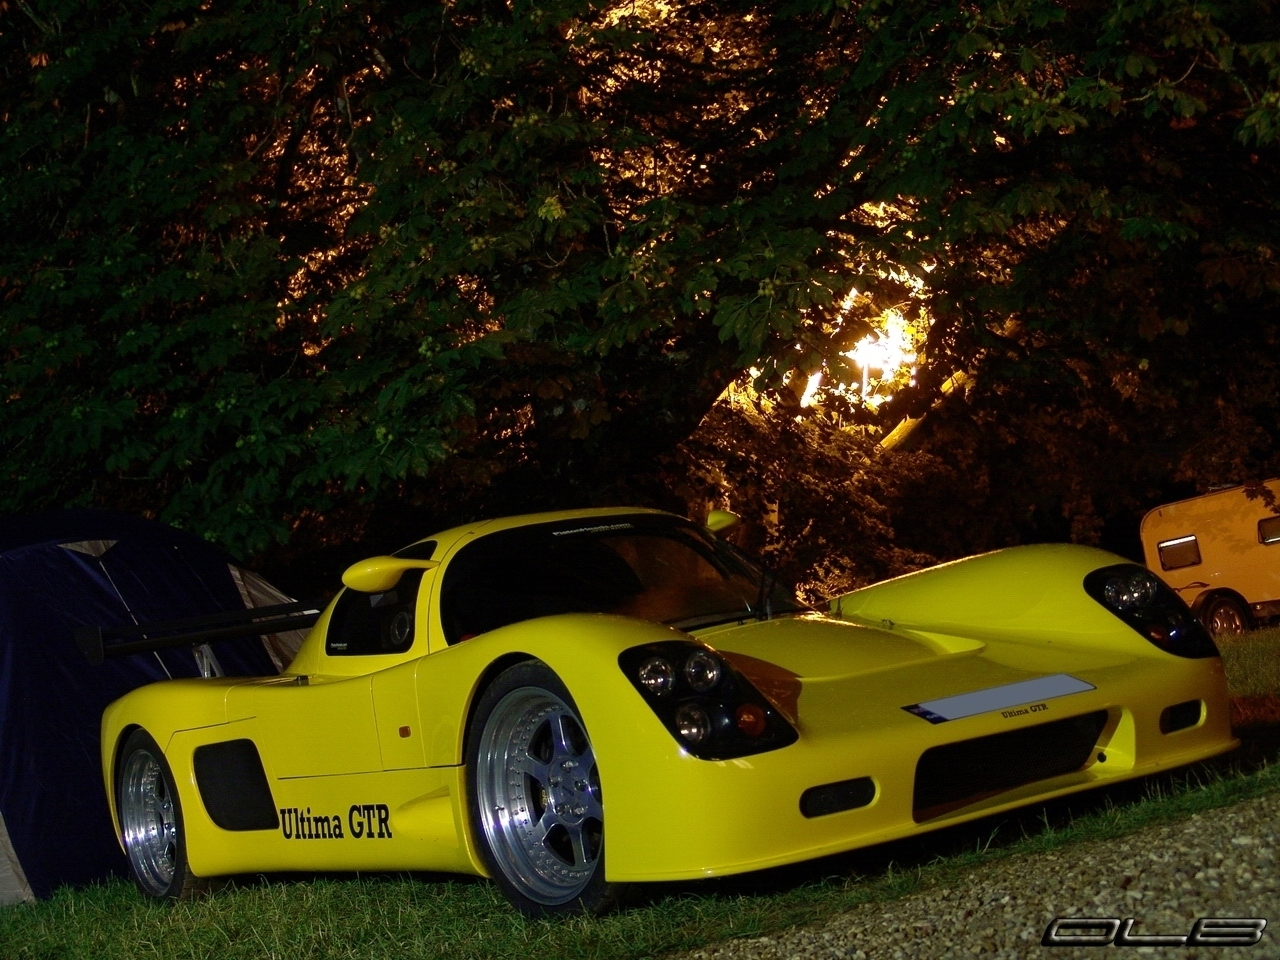 exotic-cars - U - Ultima GTR - Page 19